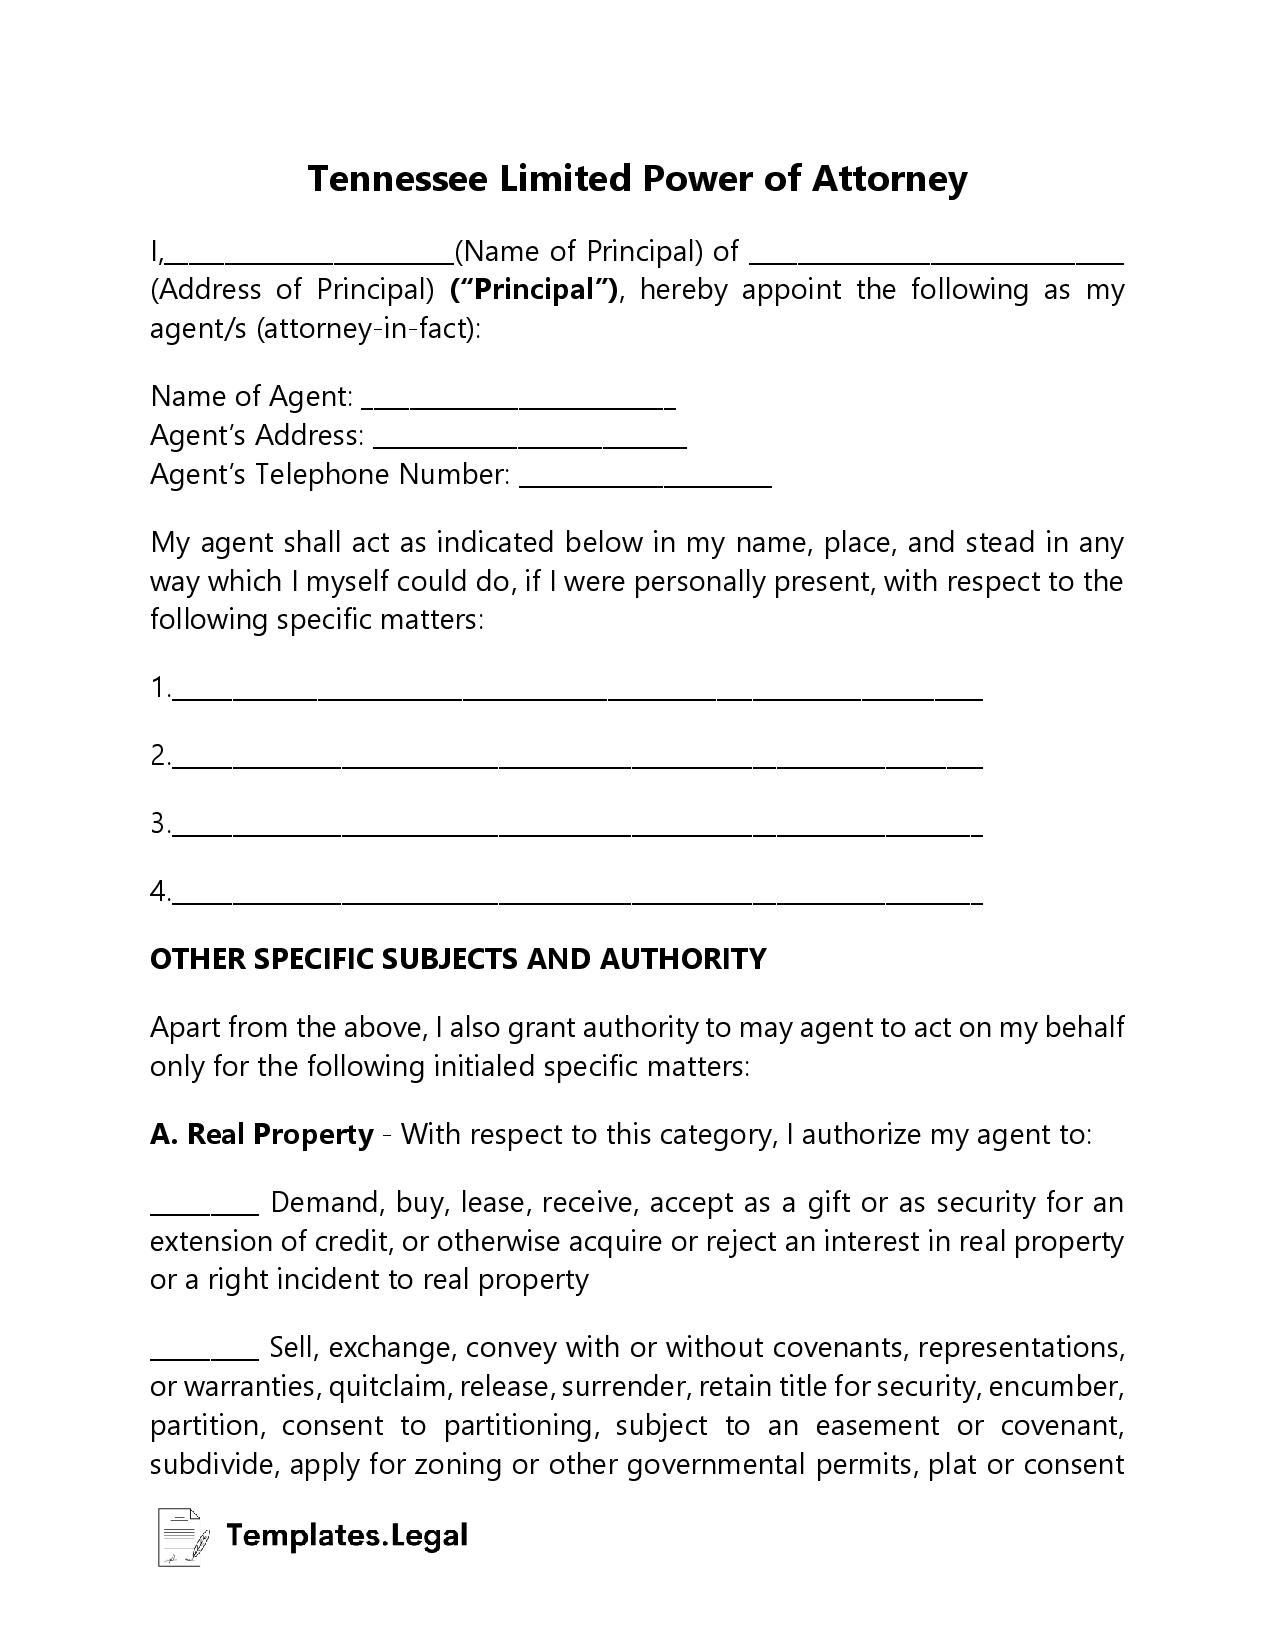 Tennessee Limited Power of Attorney - Templates.Legal